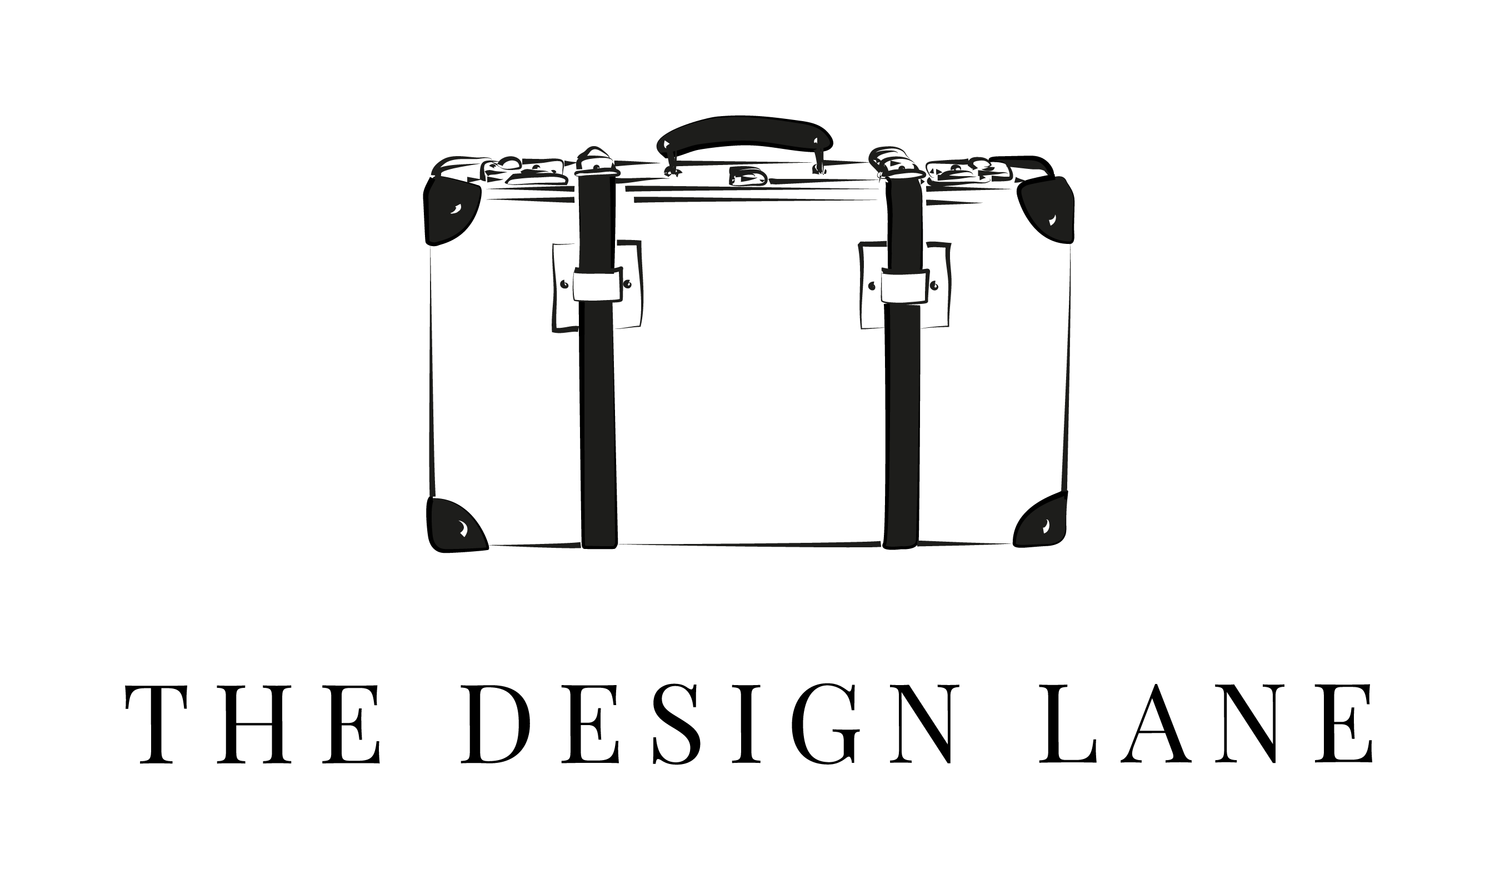 The Design Lane